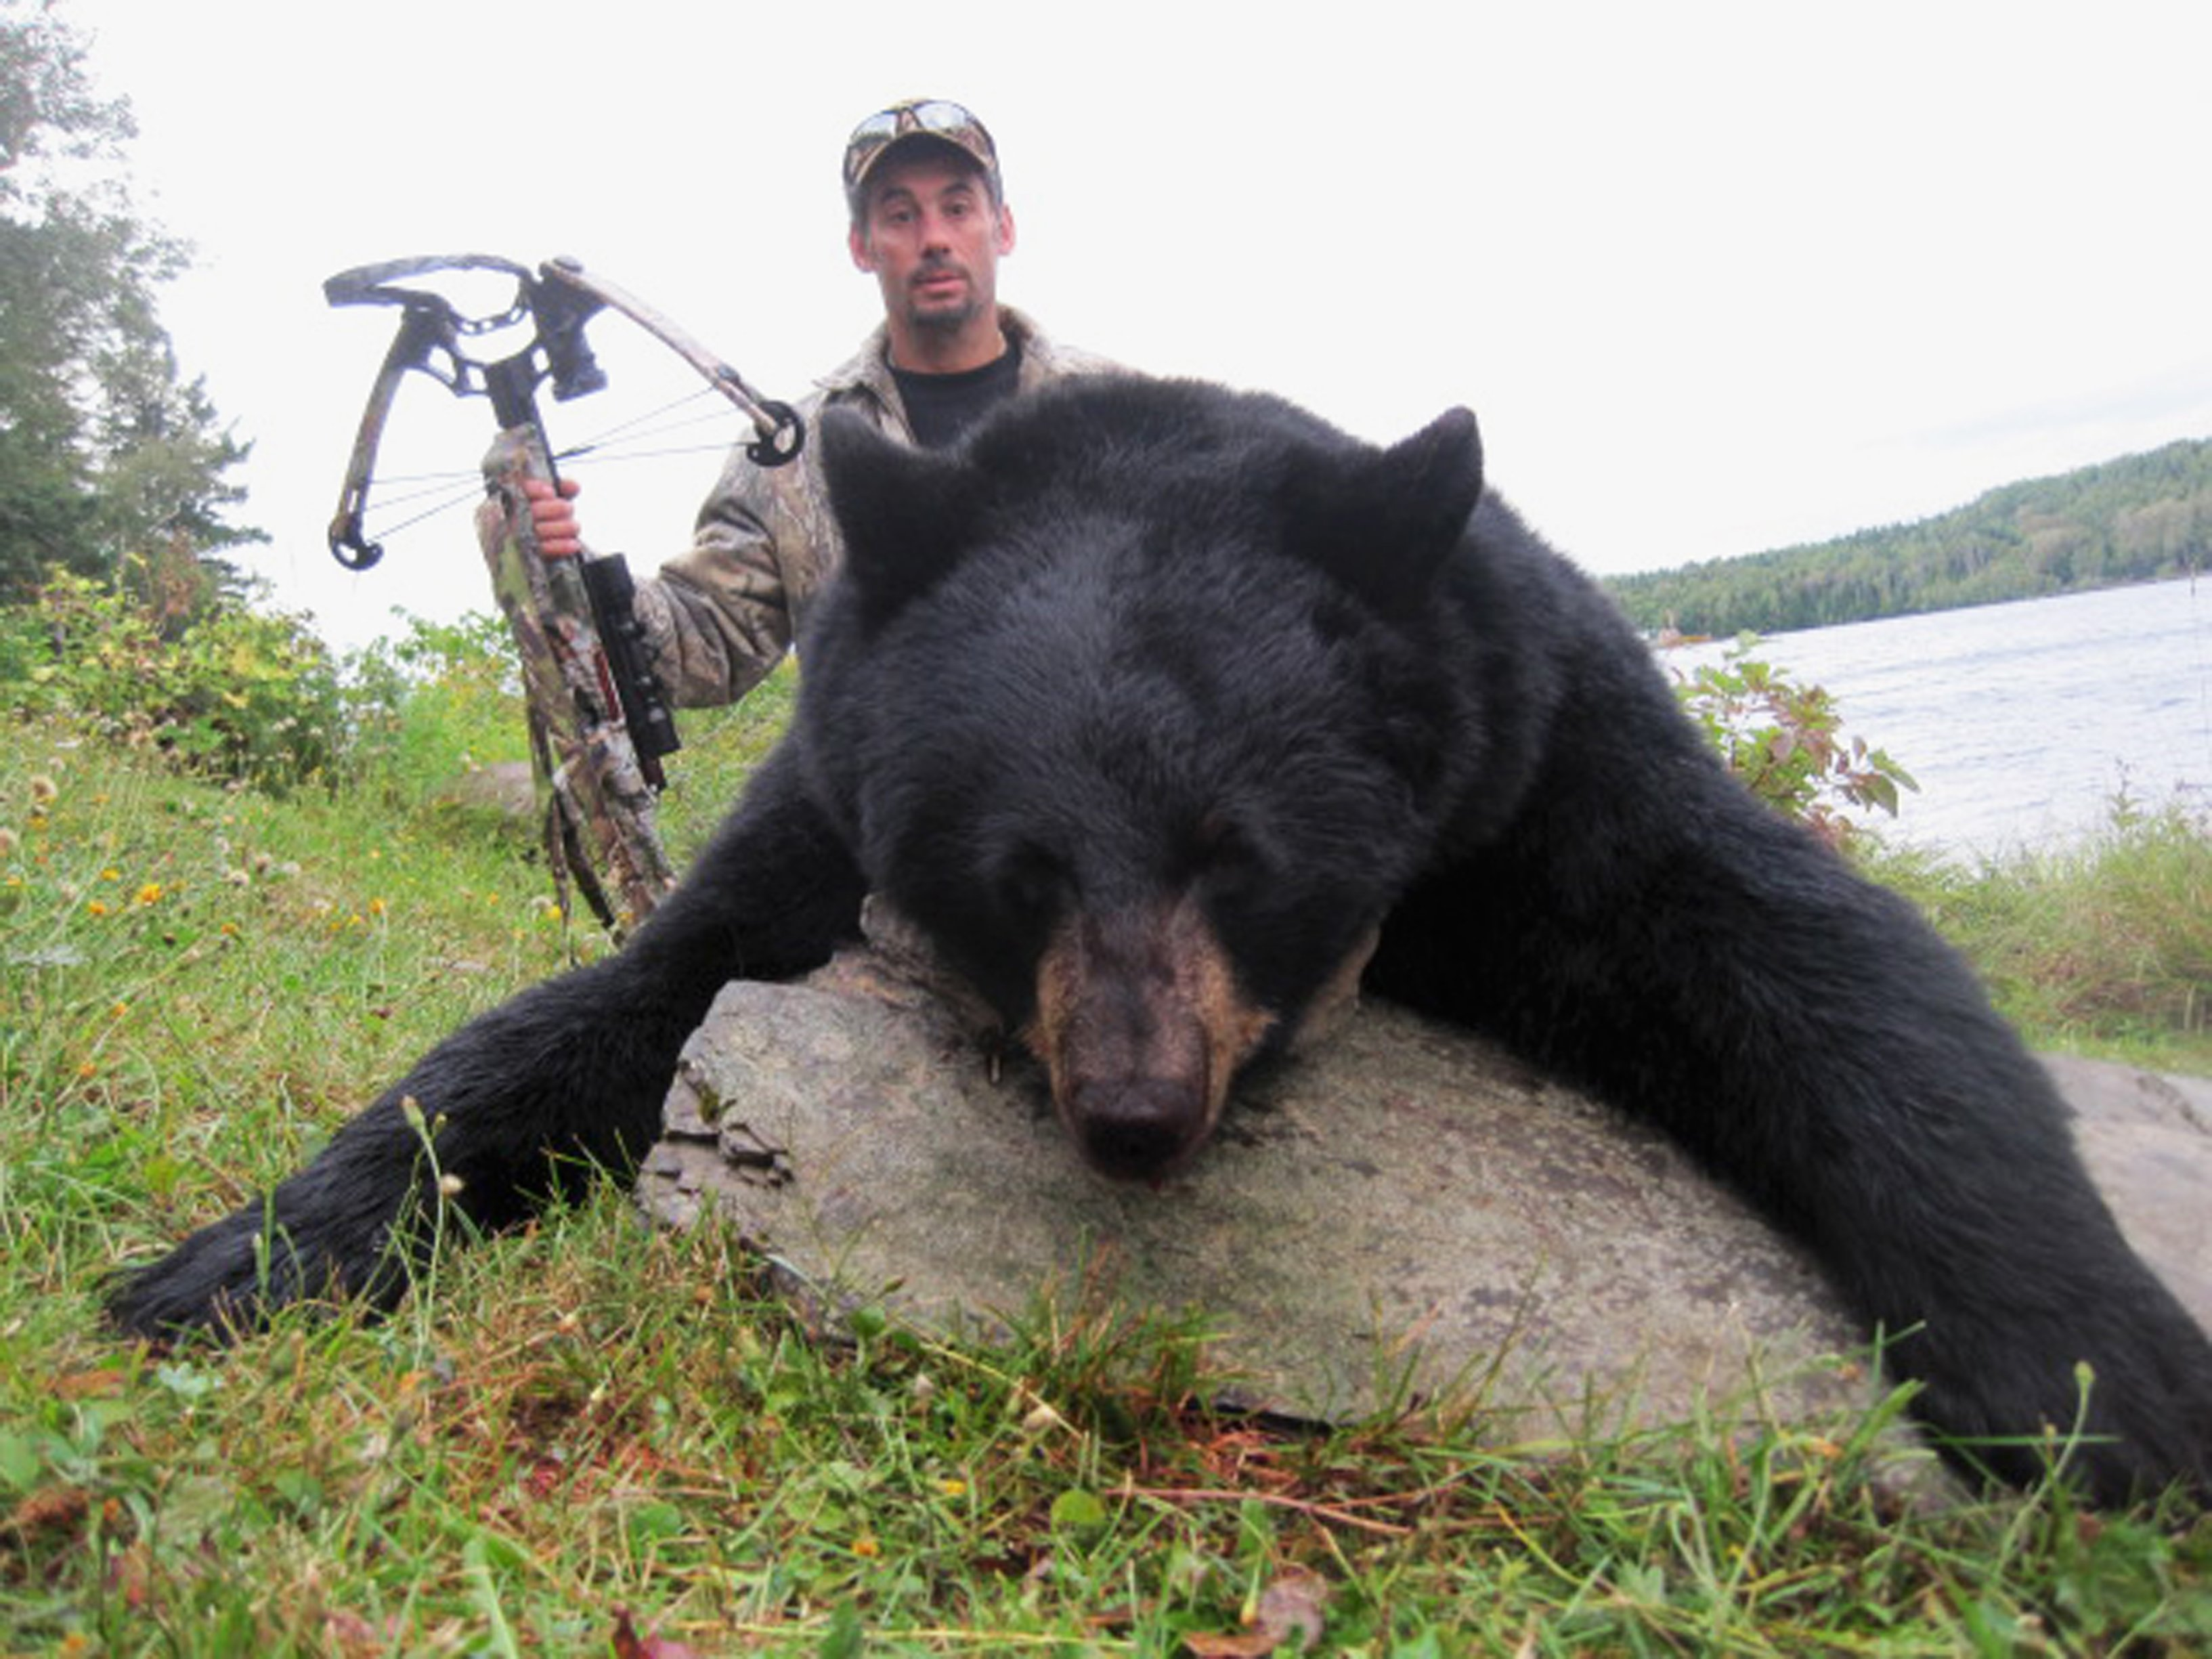 Maine state record sow with cross-bow weighing in at 325 lbs. by Al Anza (MA).